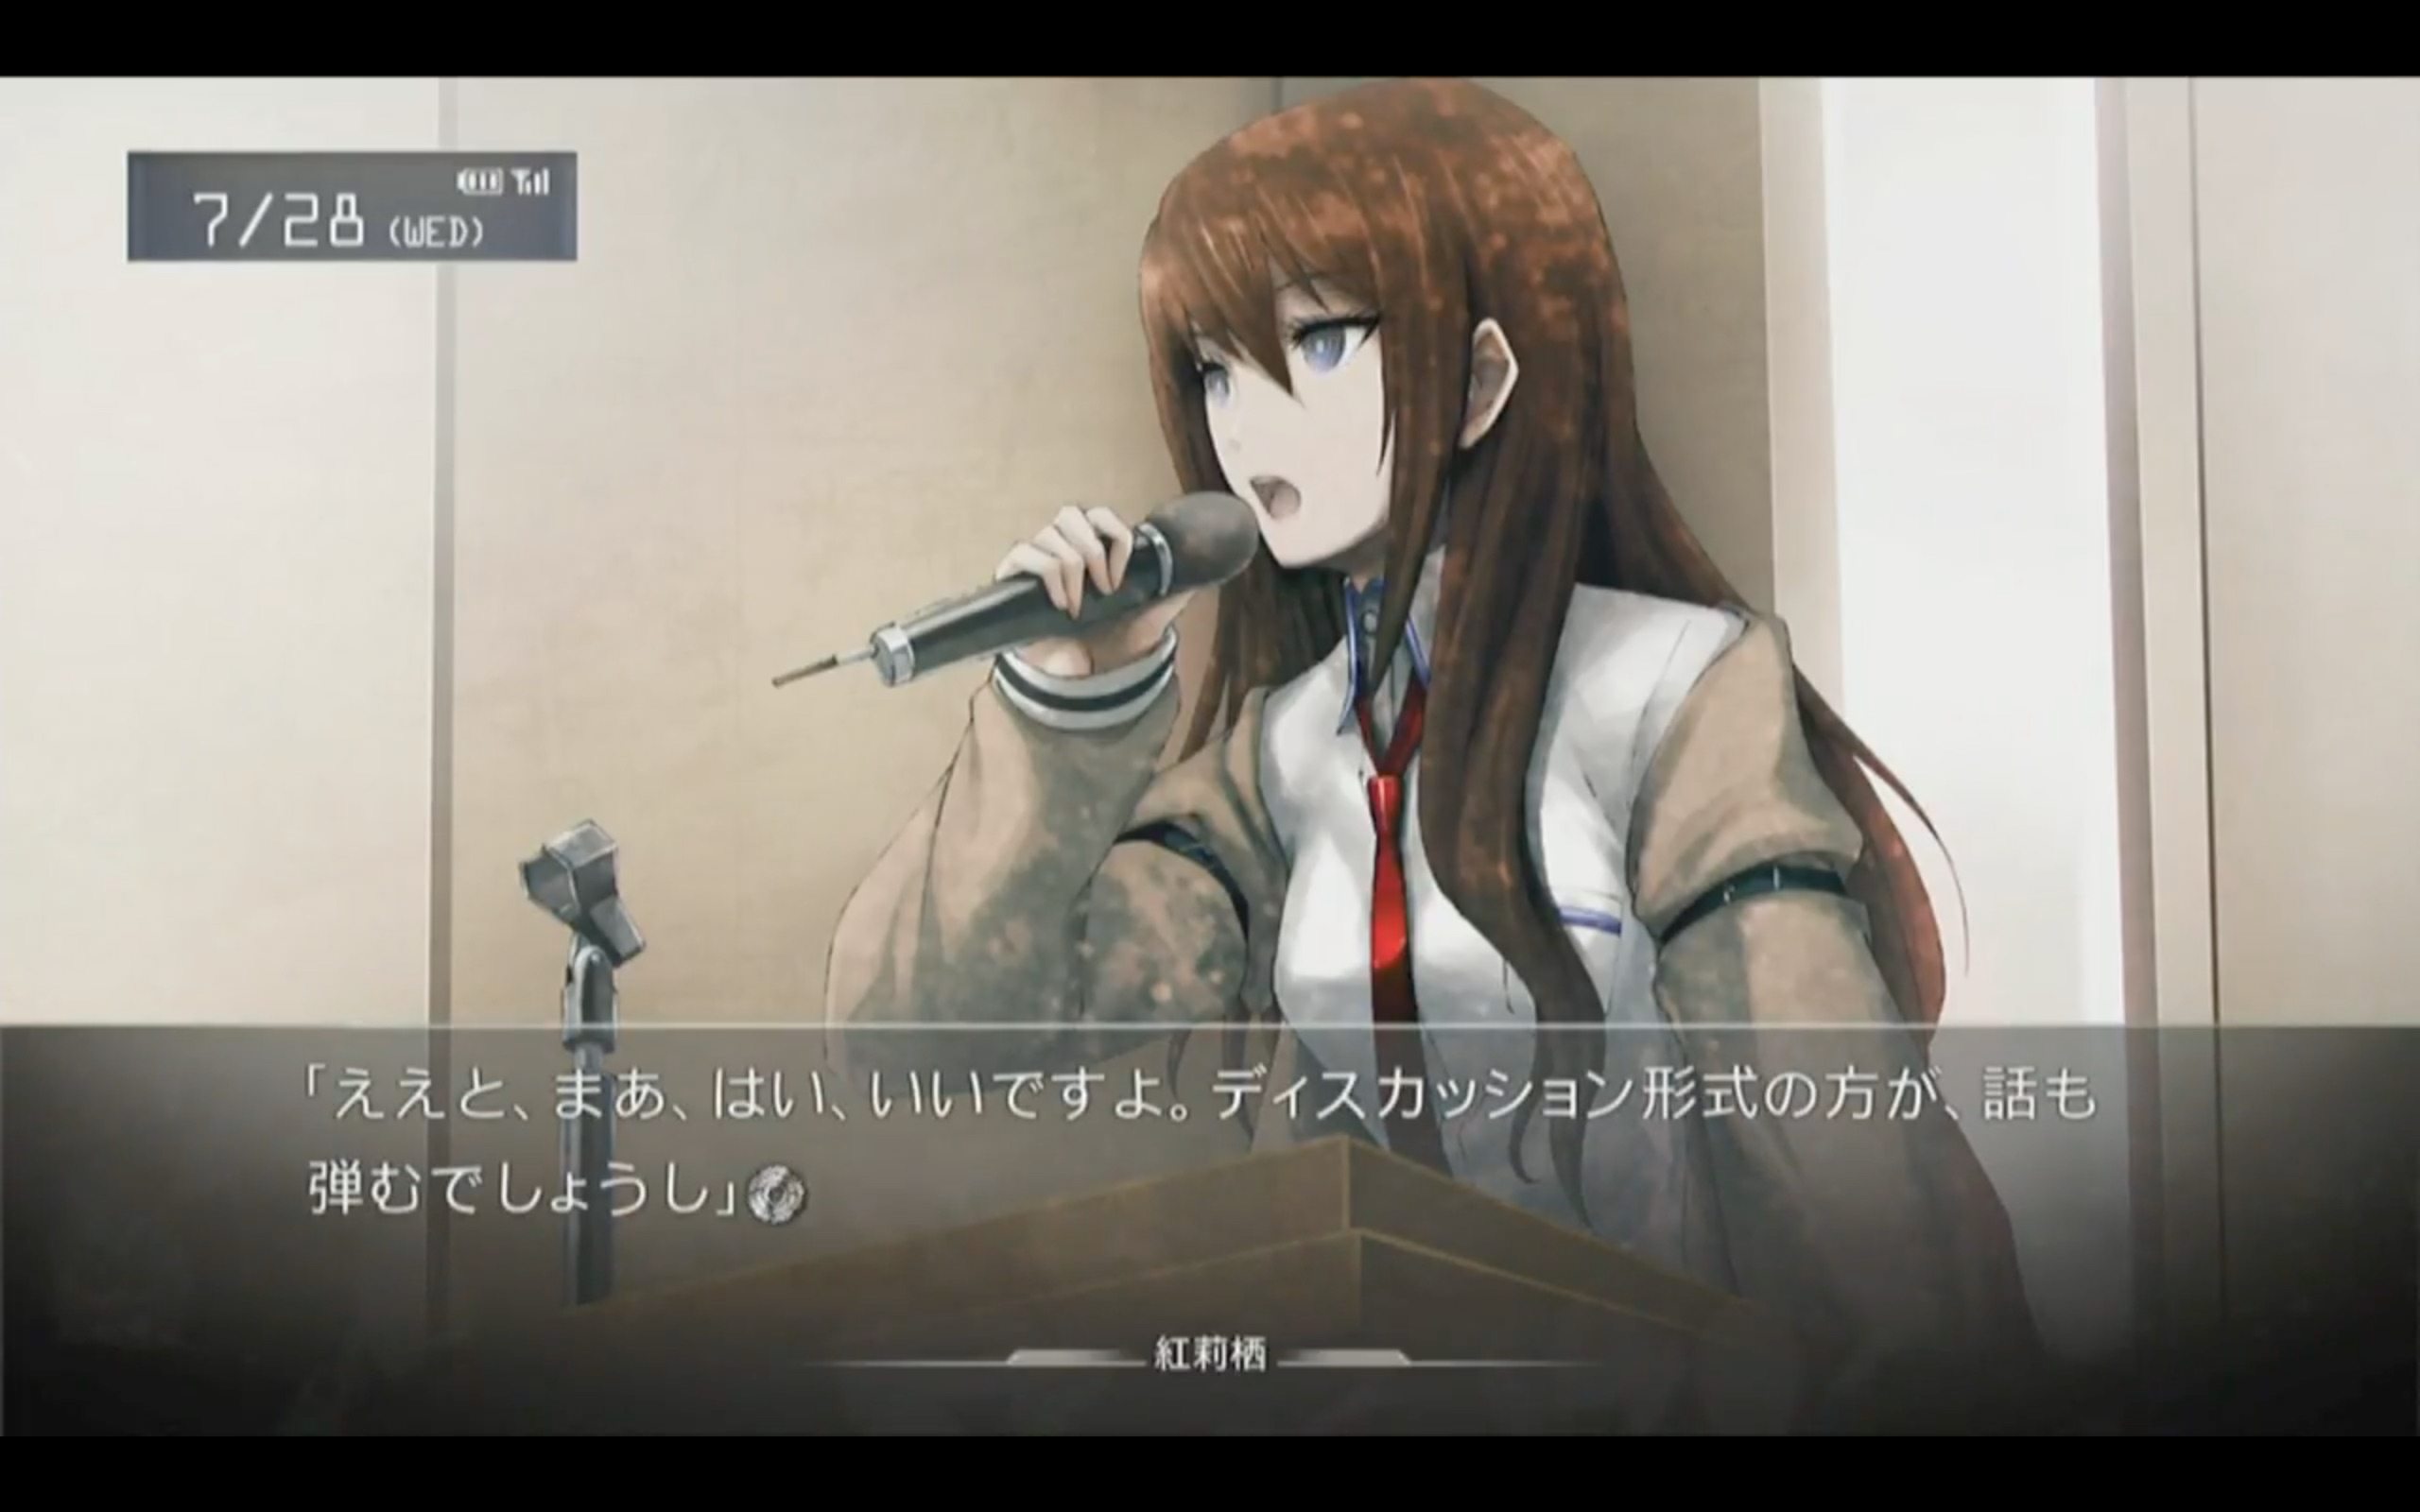 Steins Gate Elite Preview